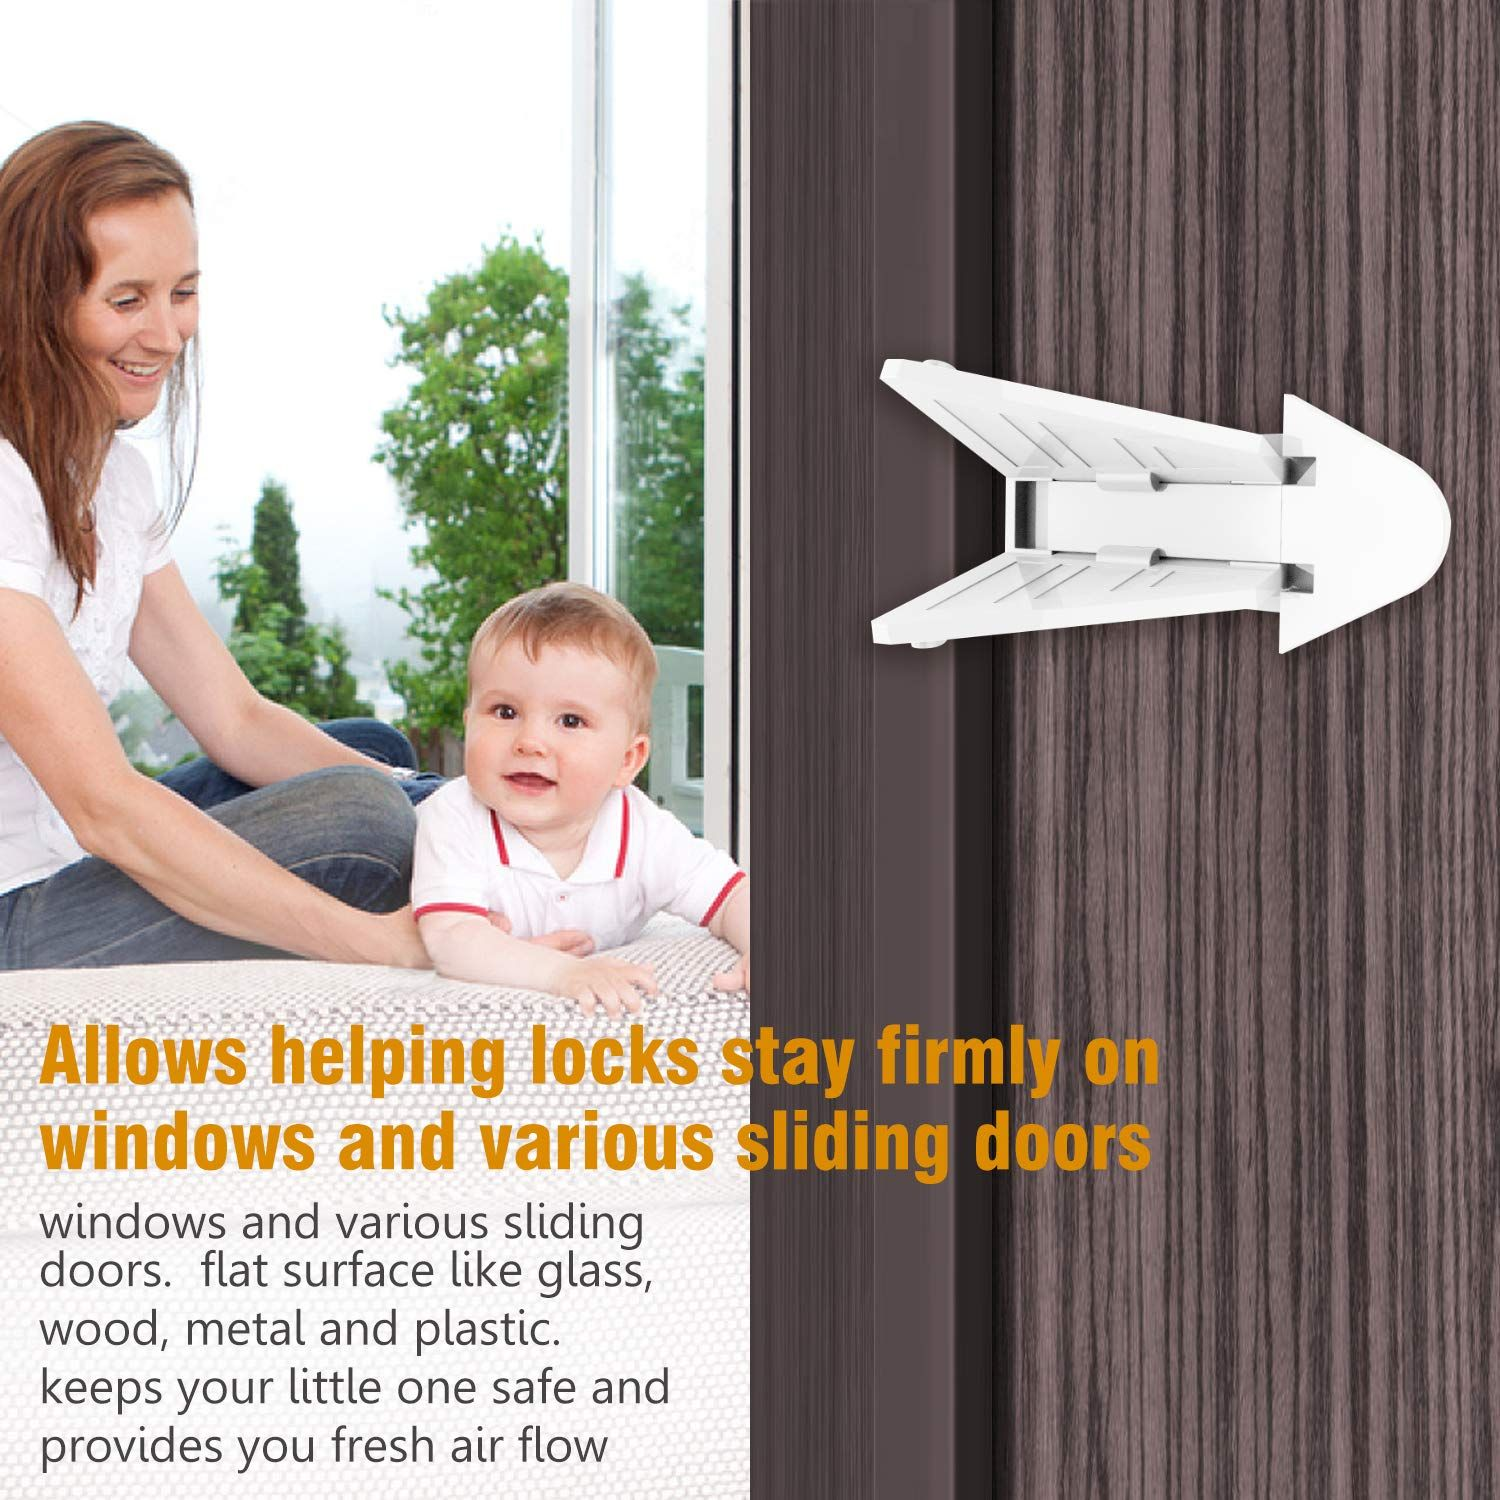 Miterl Baby Sliding Window Locks Sliding Door Locks For Baby Proofing Baby Pet Dogs Cats Safety Sliding Closet In 2020 Sliding Window Lock Sliding Doors Baby Proofing